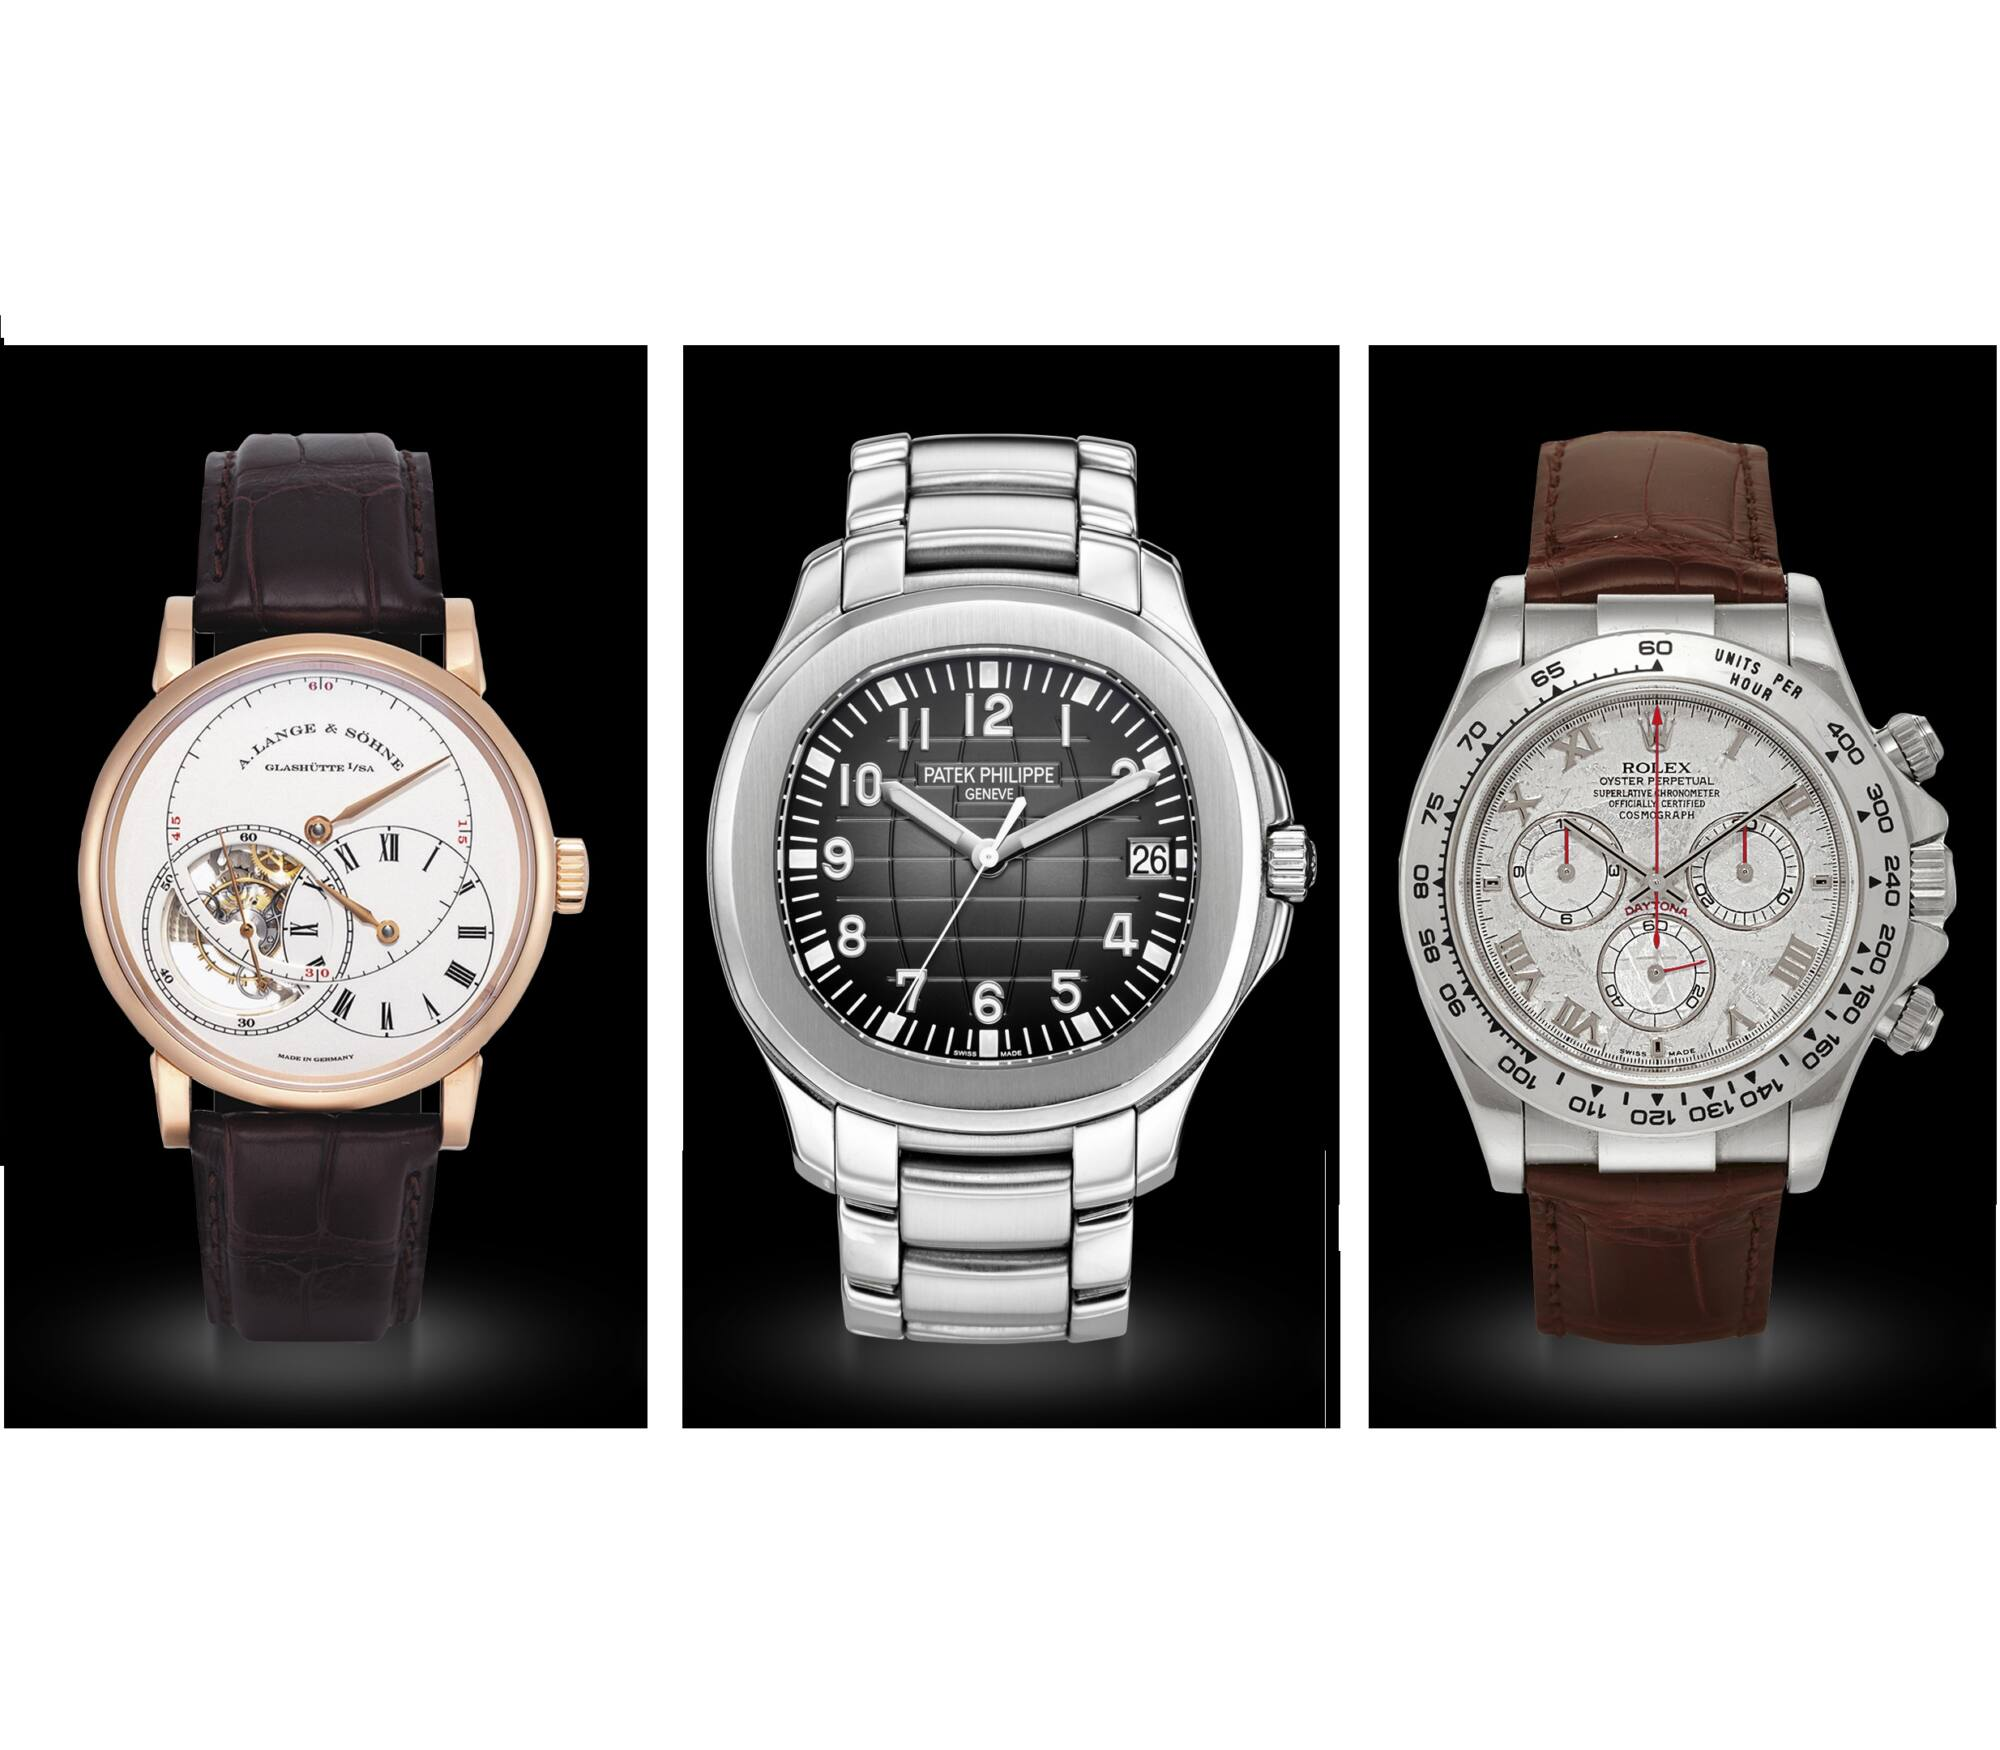 Christie's Watches Online Auction: The Essential Collection - MondaniWeb